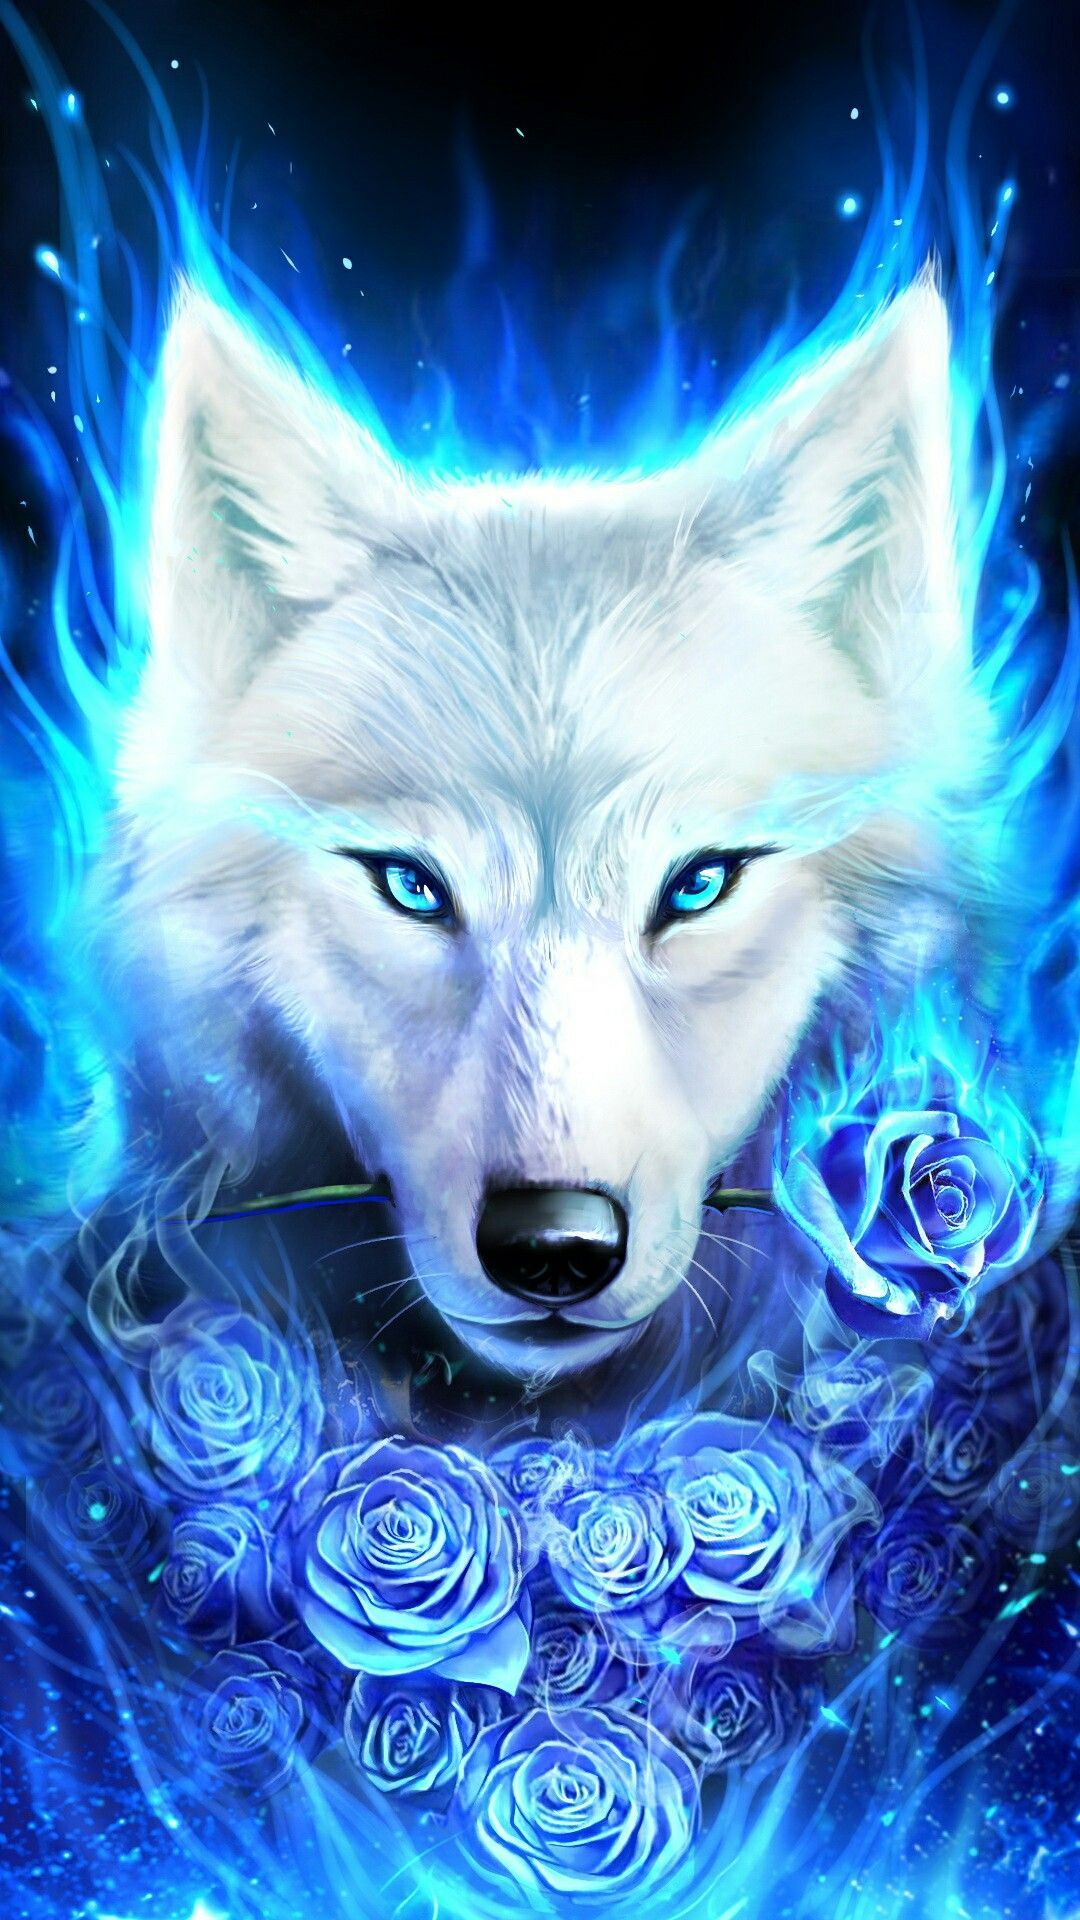 Descargar Wolf Wallpapers High Definition para Iphone Wallpaper »Hupages